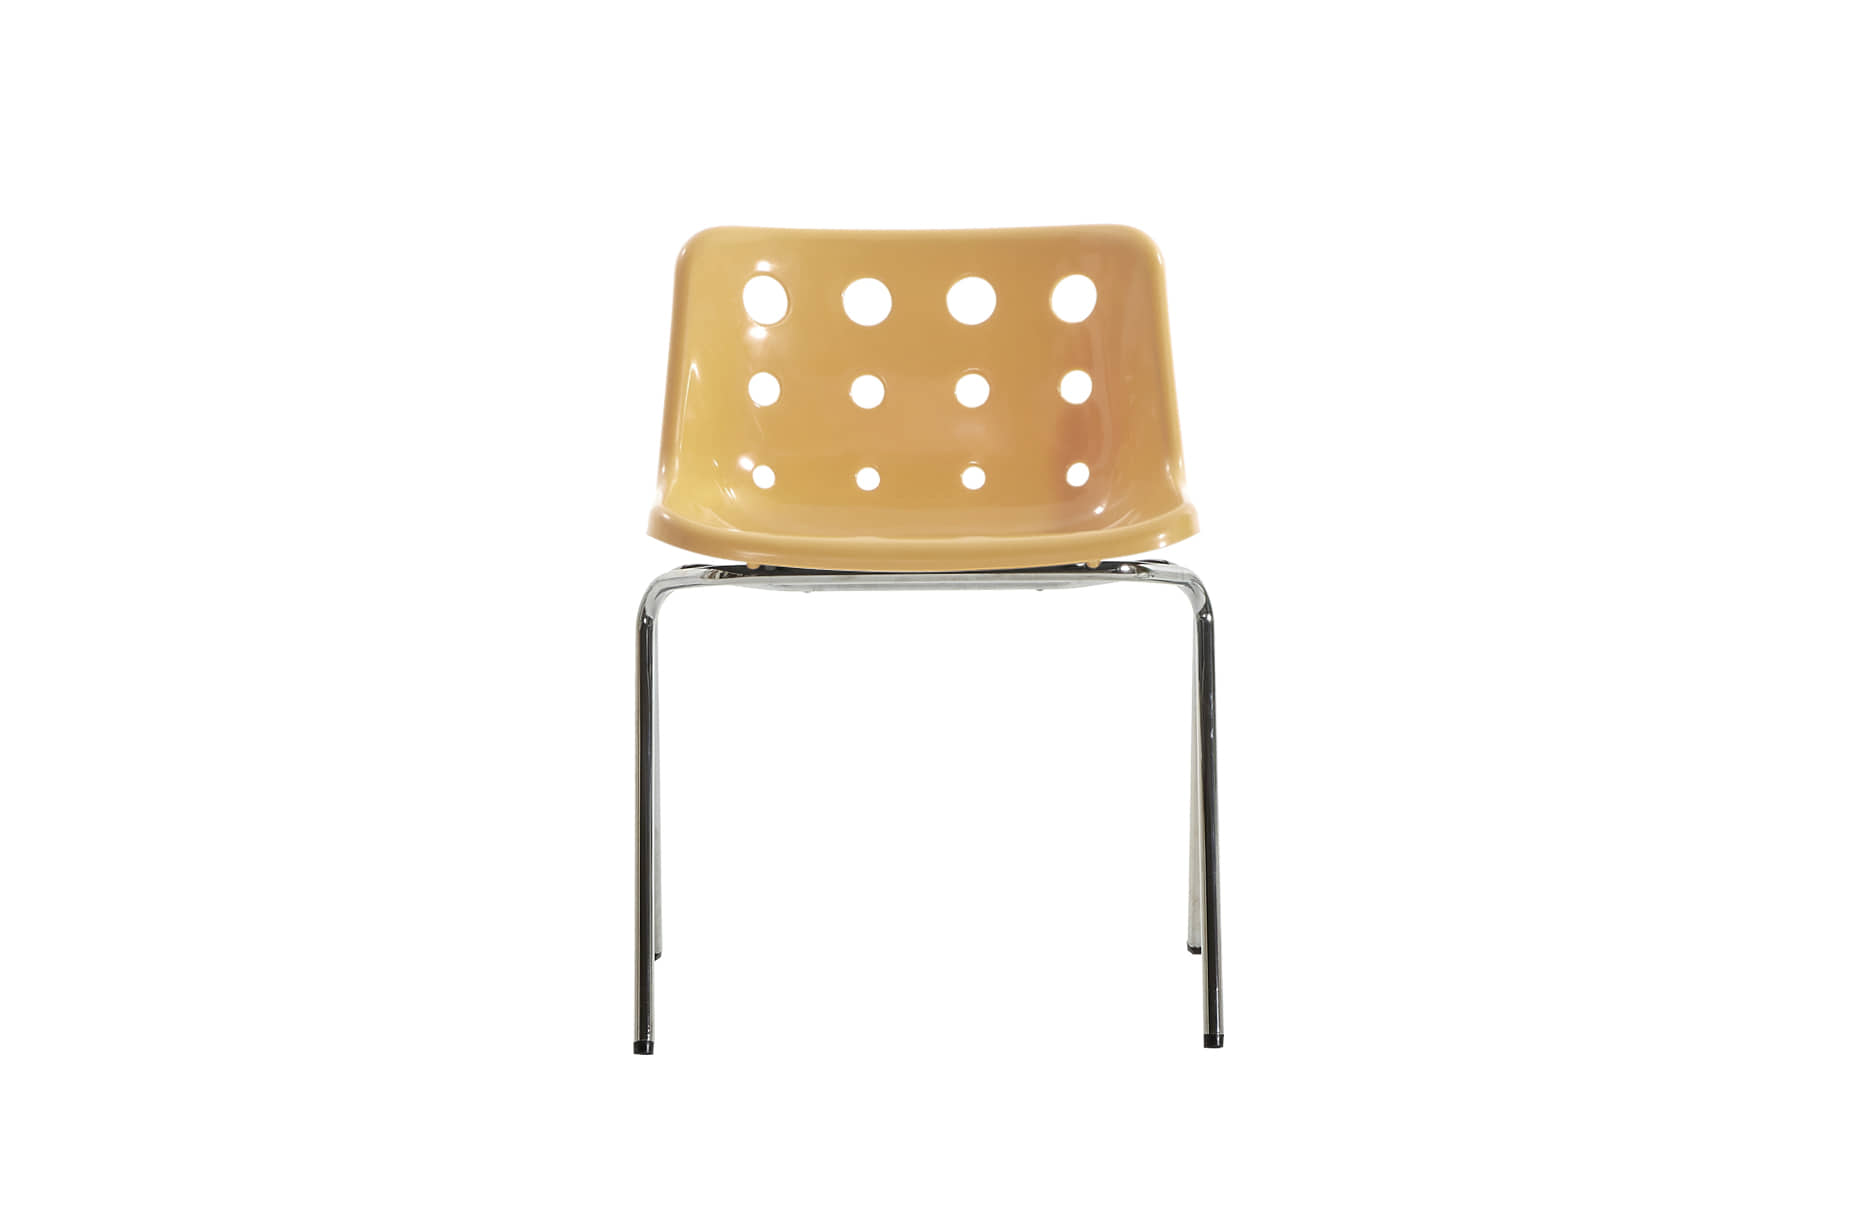 (주)도이치[BRITISHER] POLO chair by Robinday 1972 / chromed leg